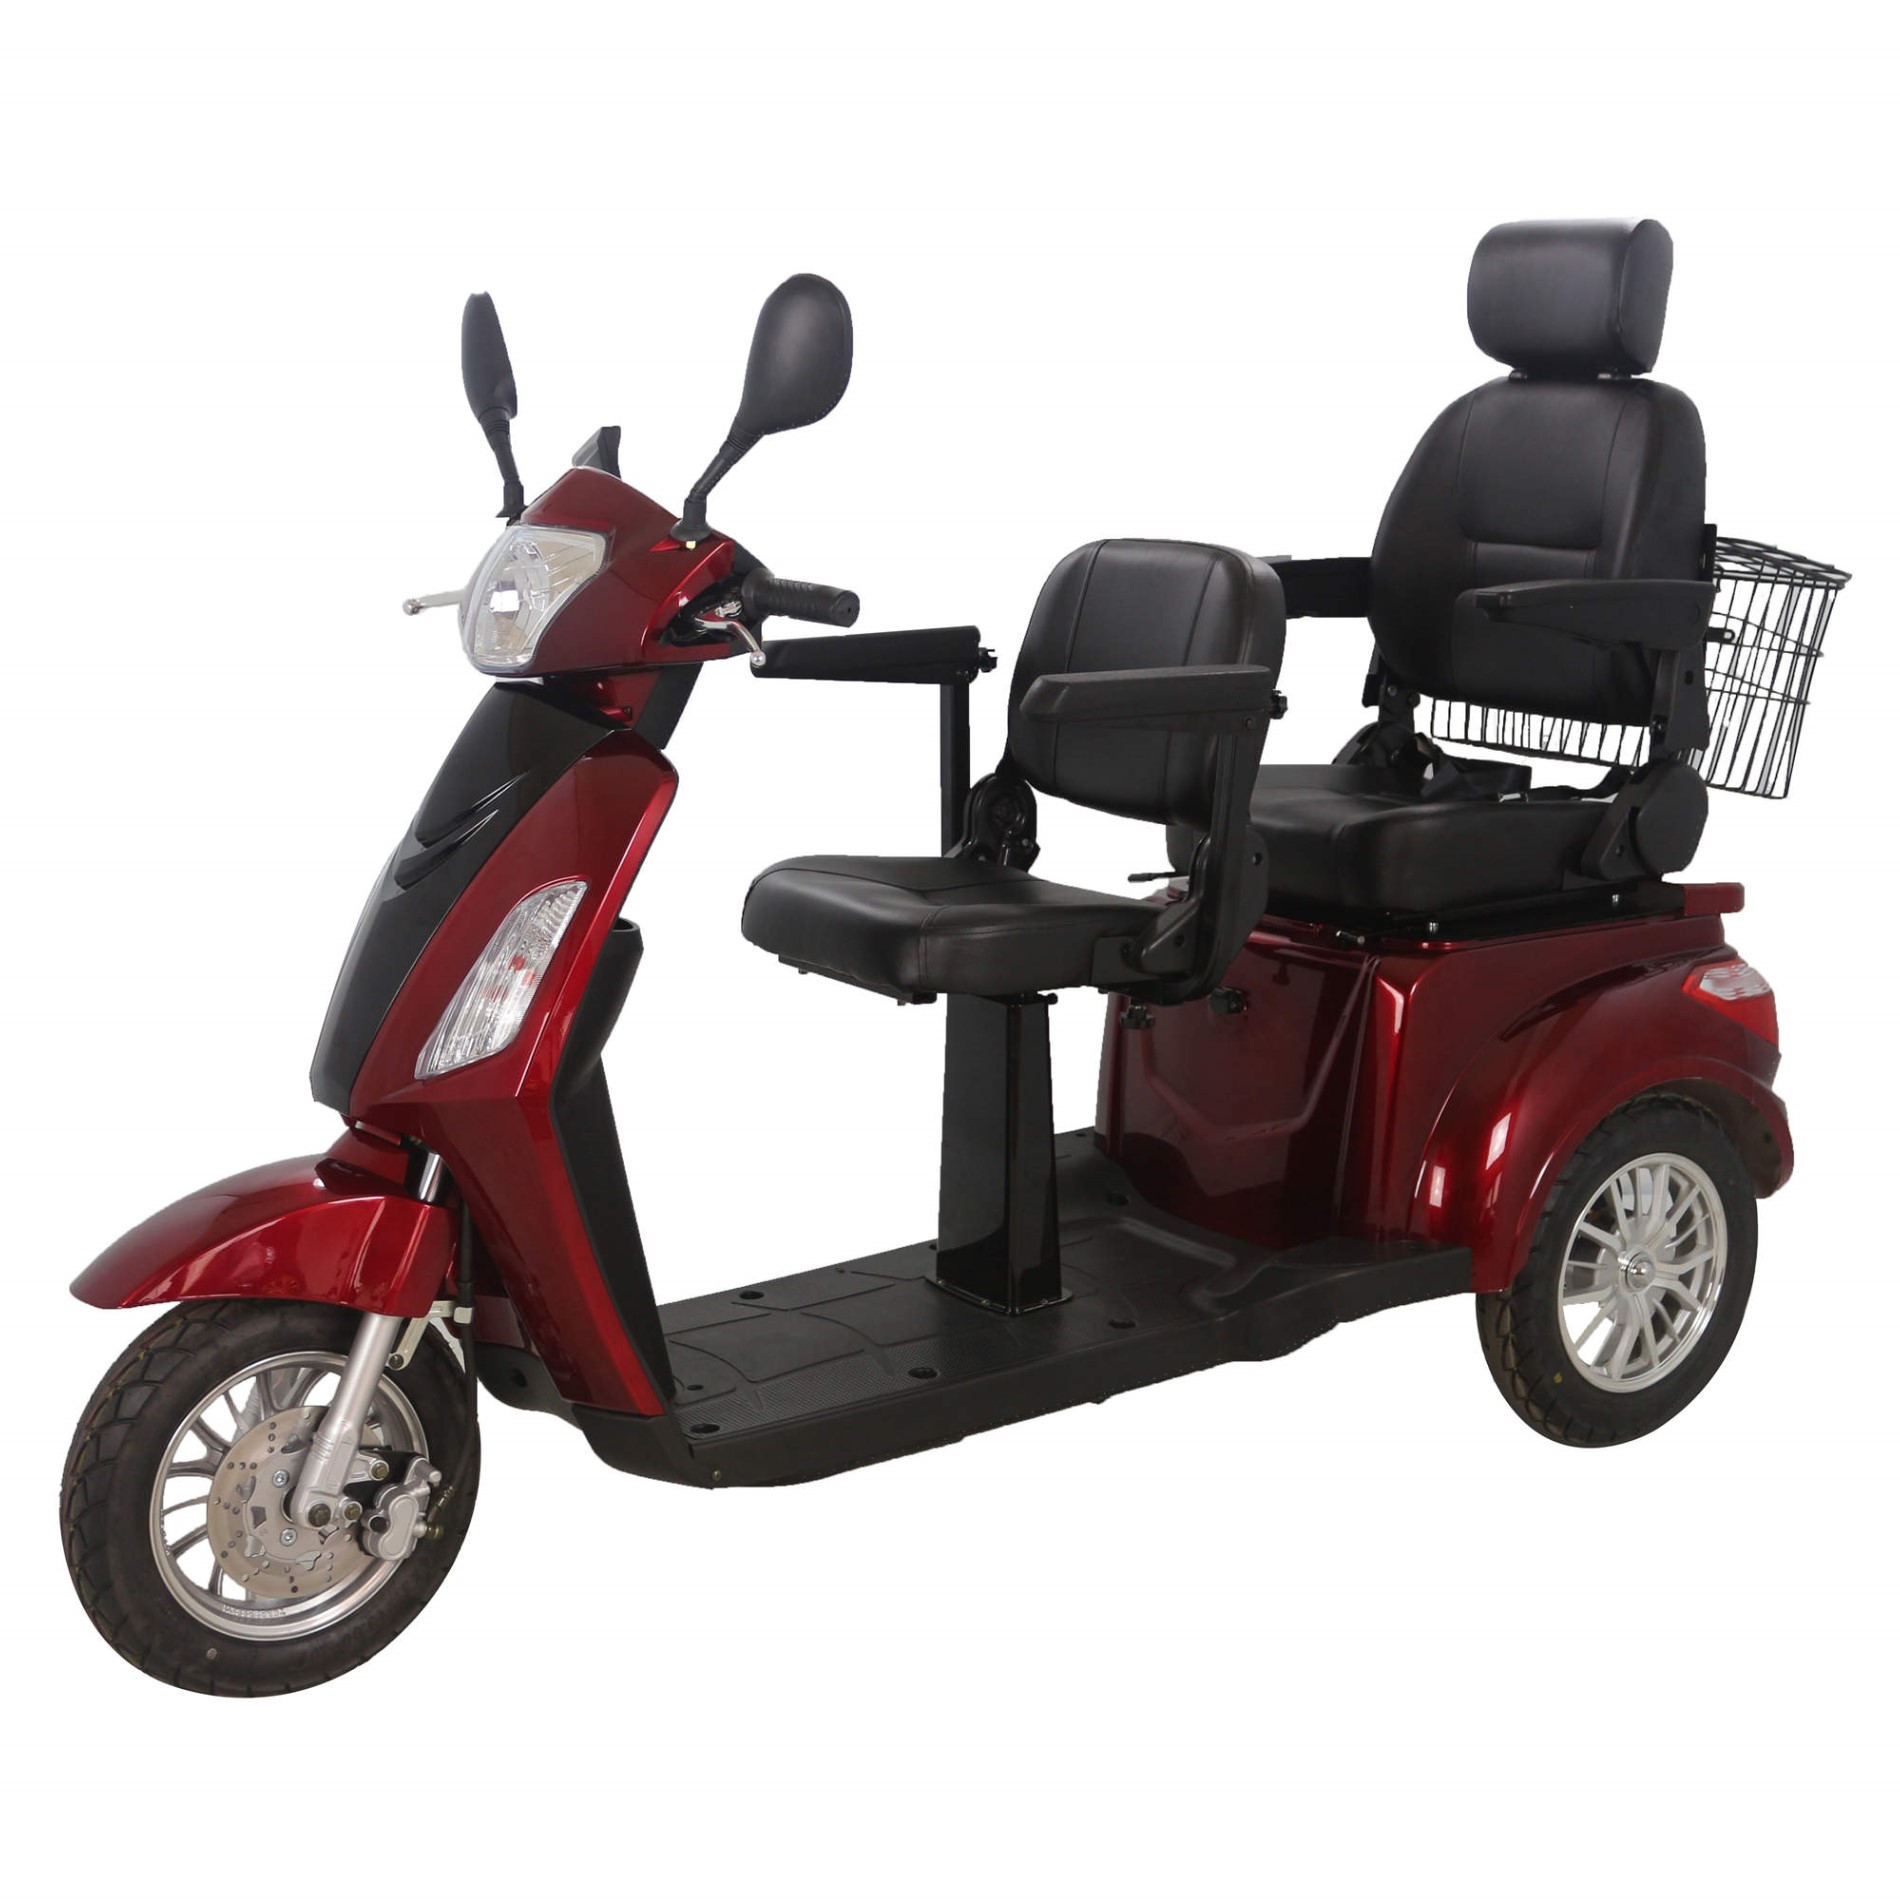 3 Wheel Electric Scooter With 2 Seat